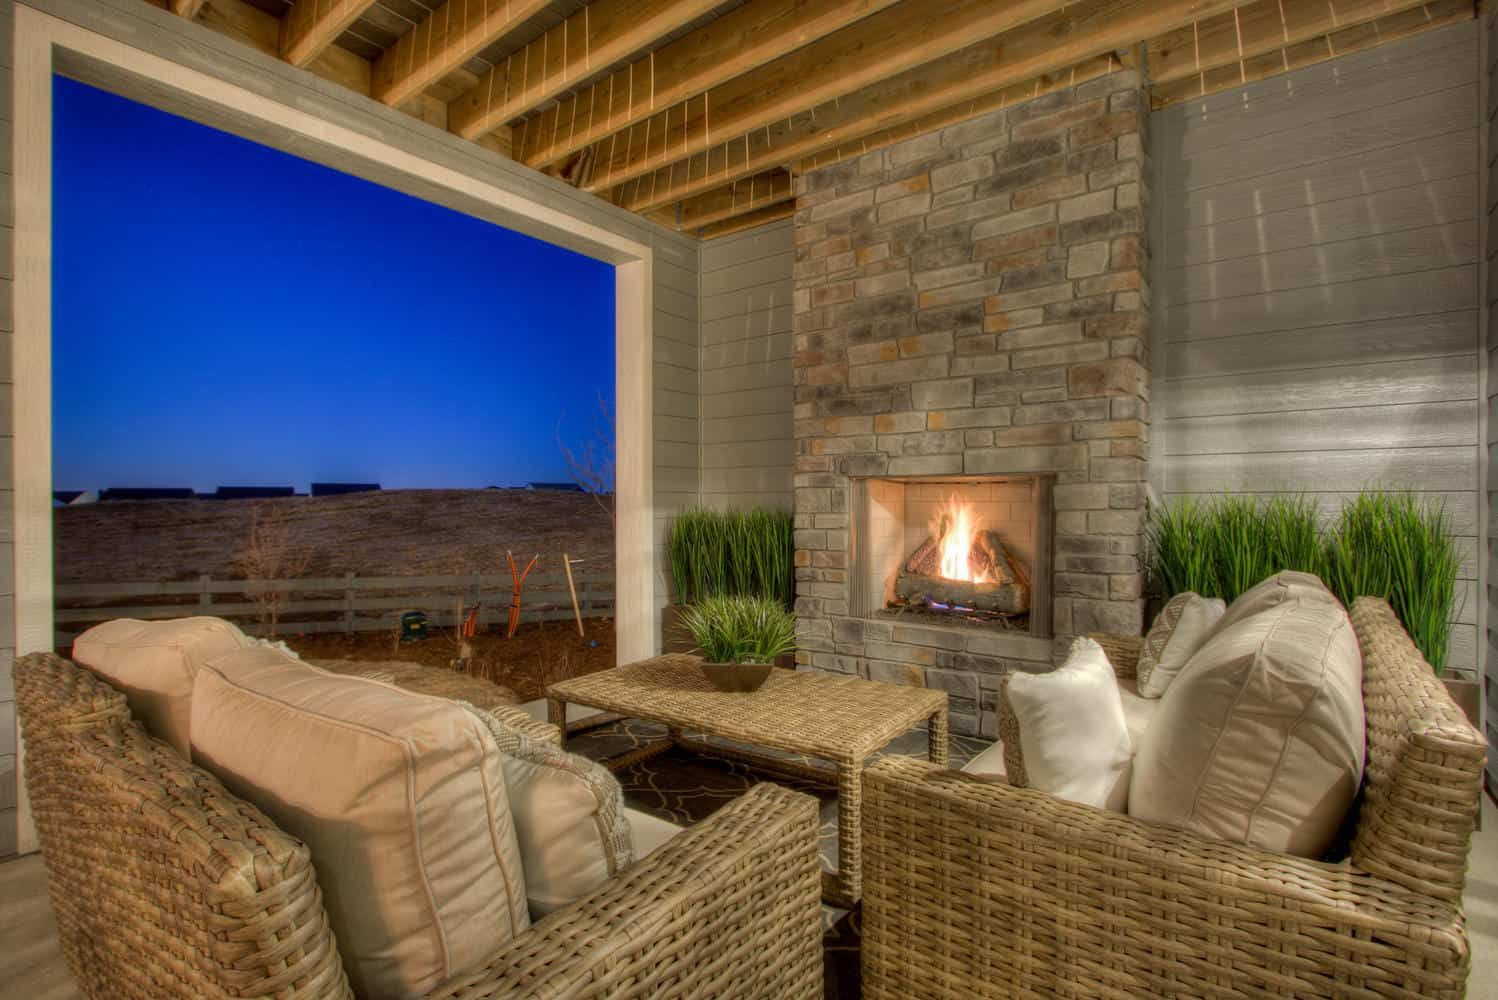 Plan 4505 | Covered Patio:Example of Plan 4505 | Covered Patio